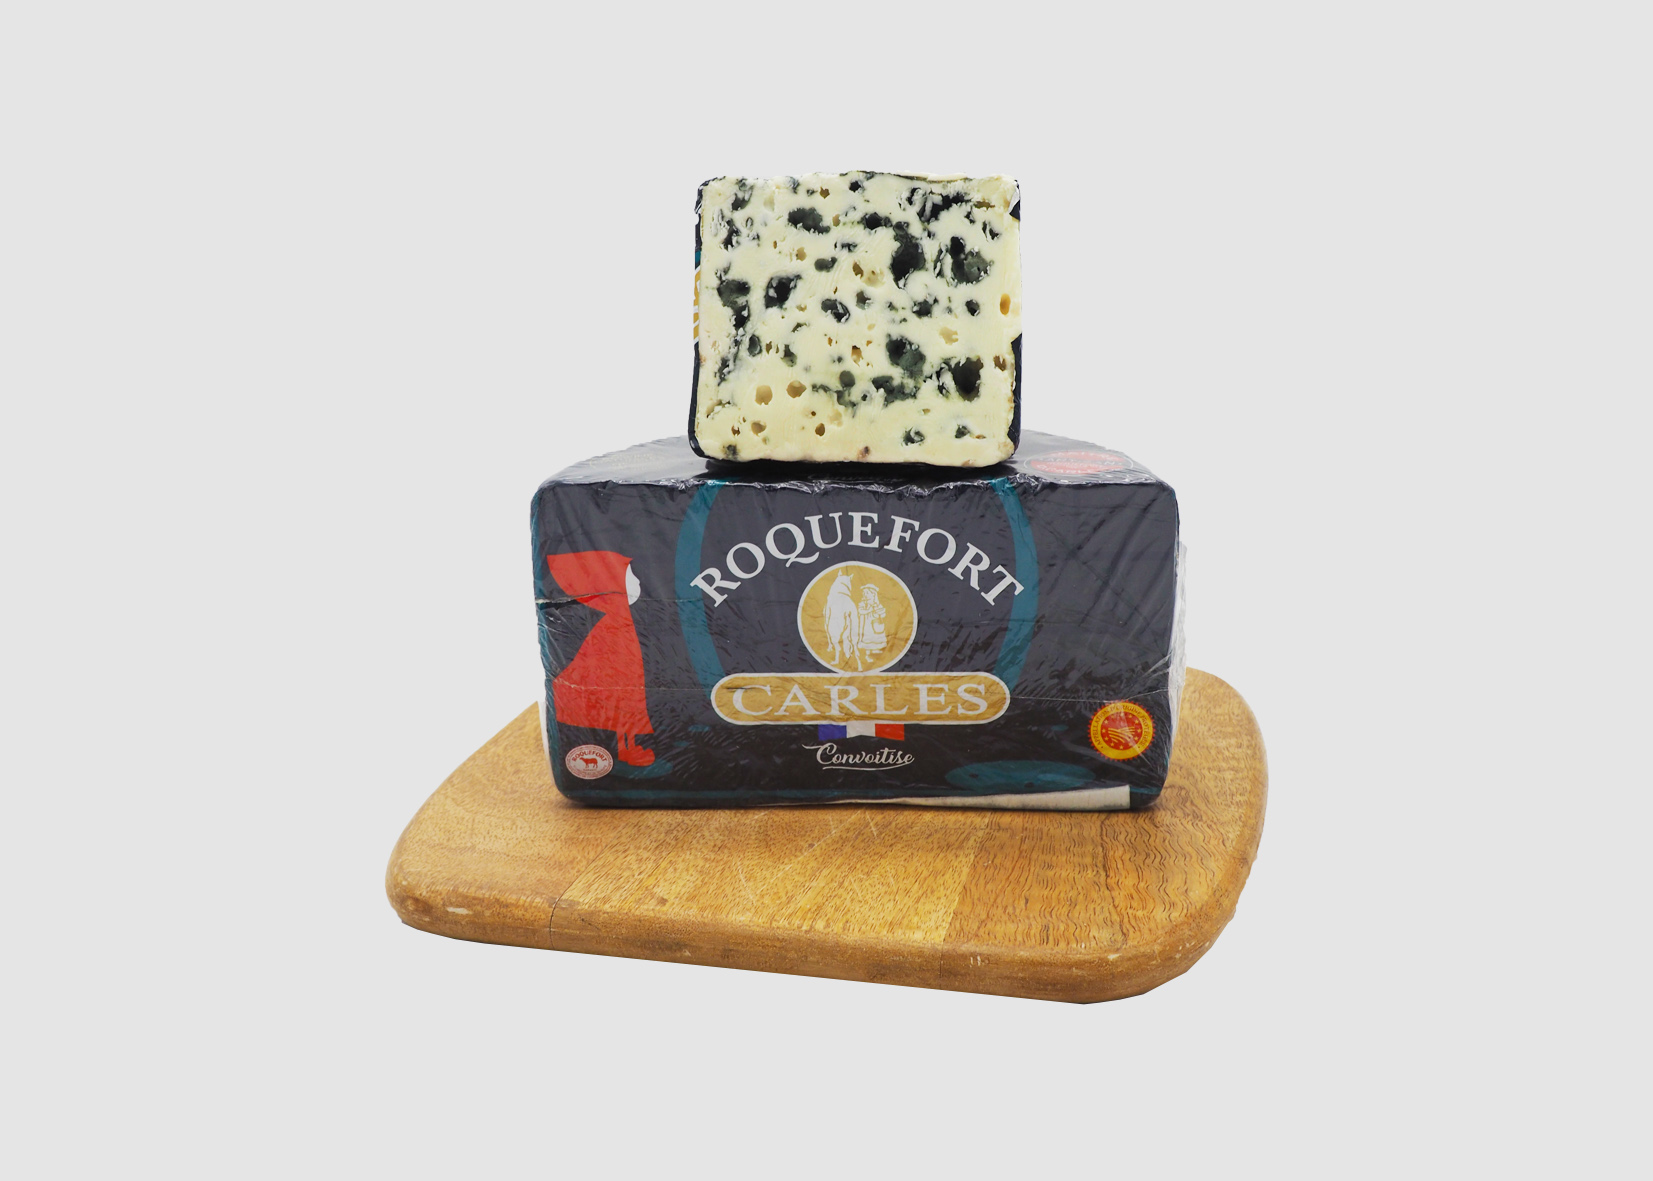 roquefort-carles-fromage-napoleon-acheter-fromagerie